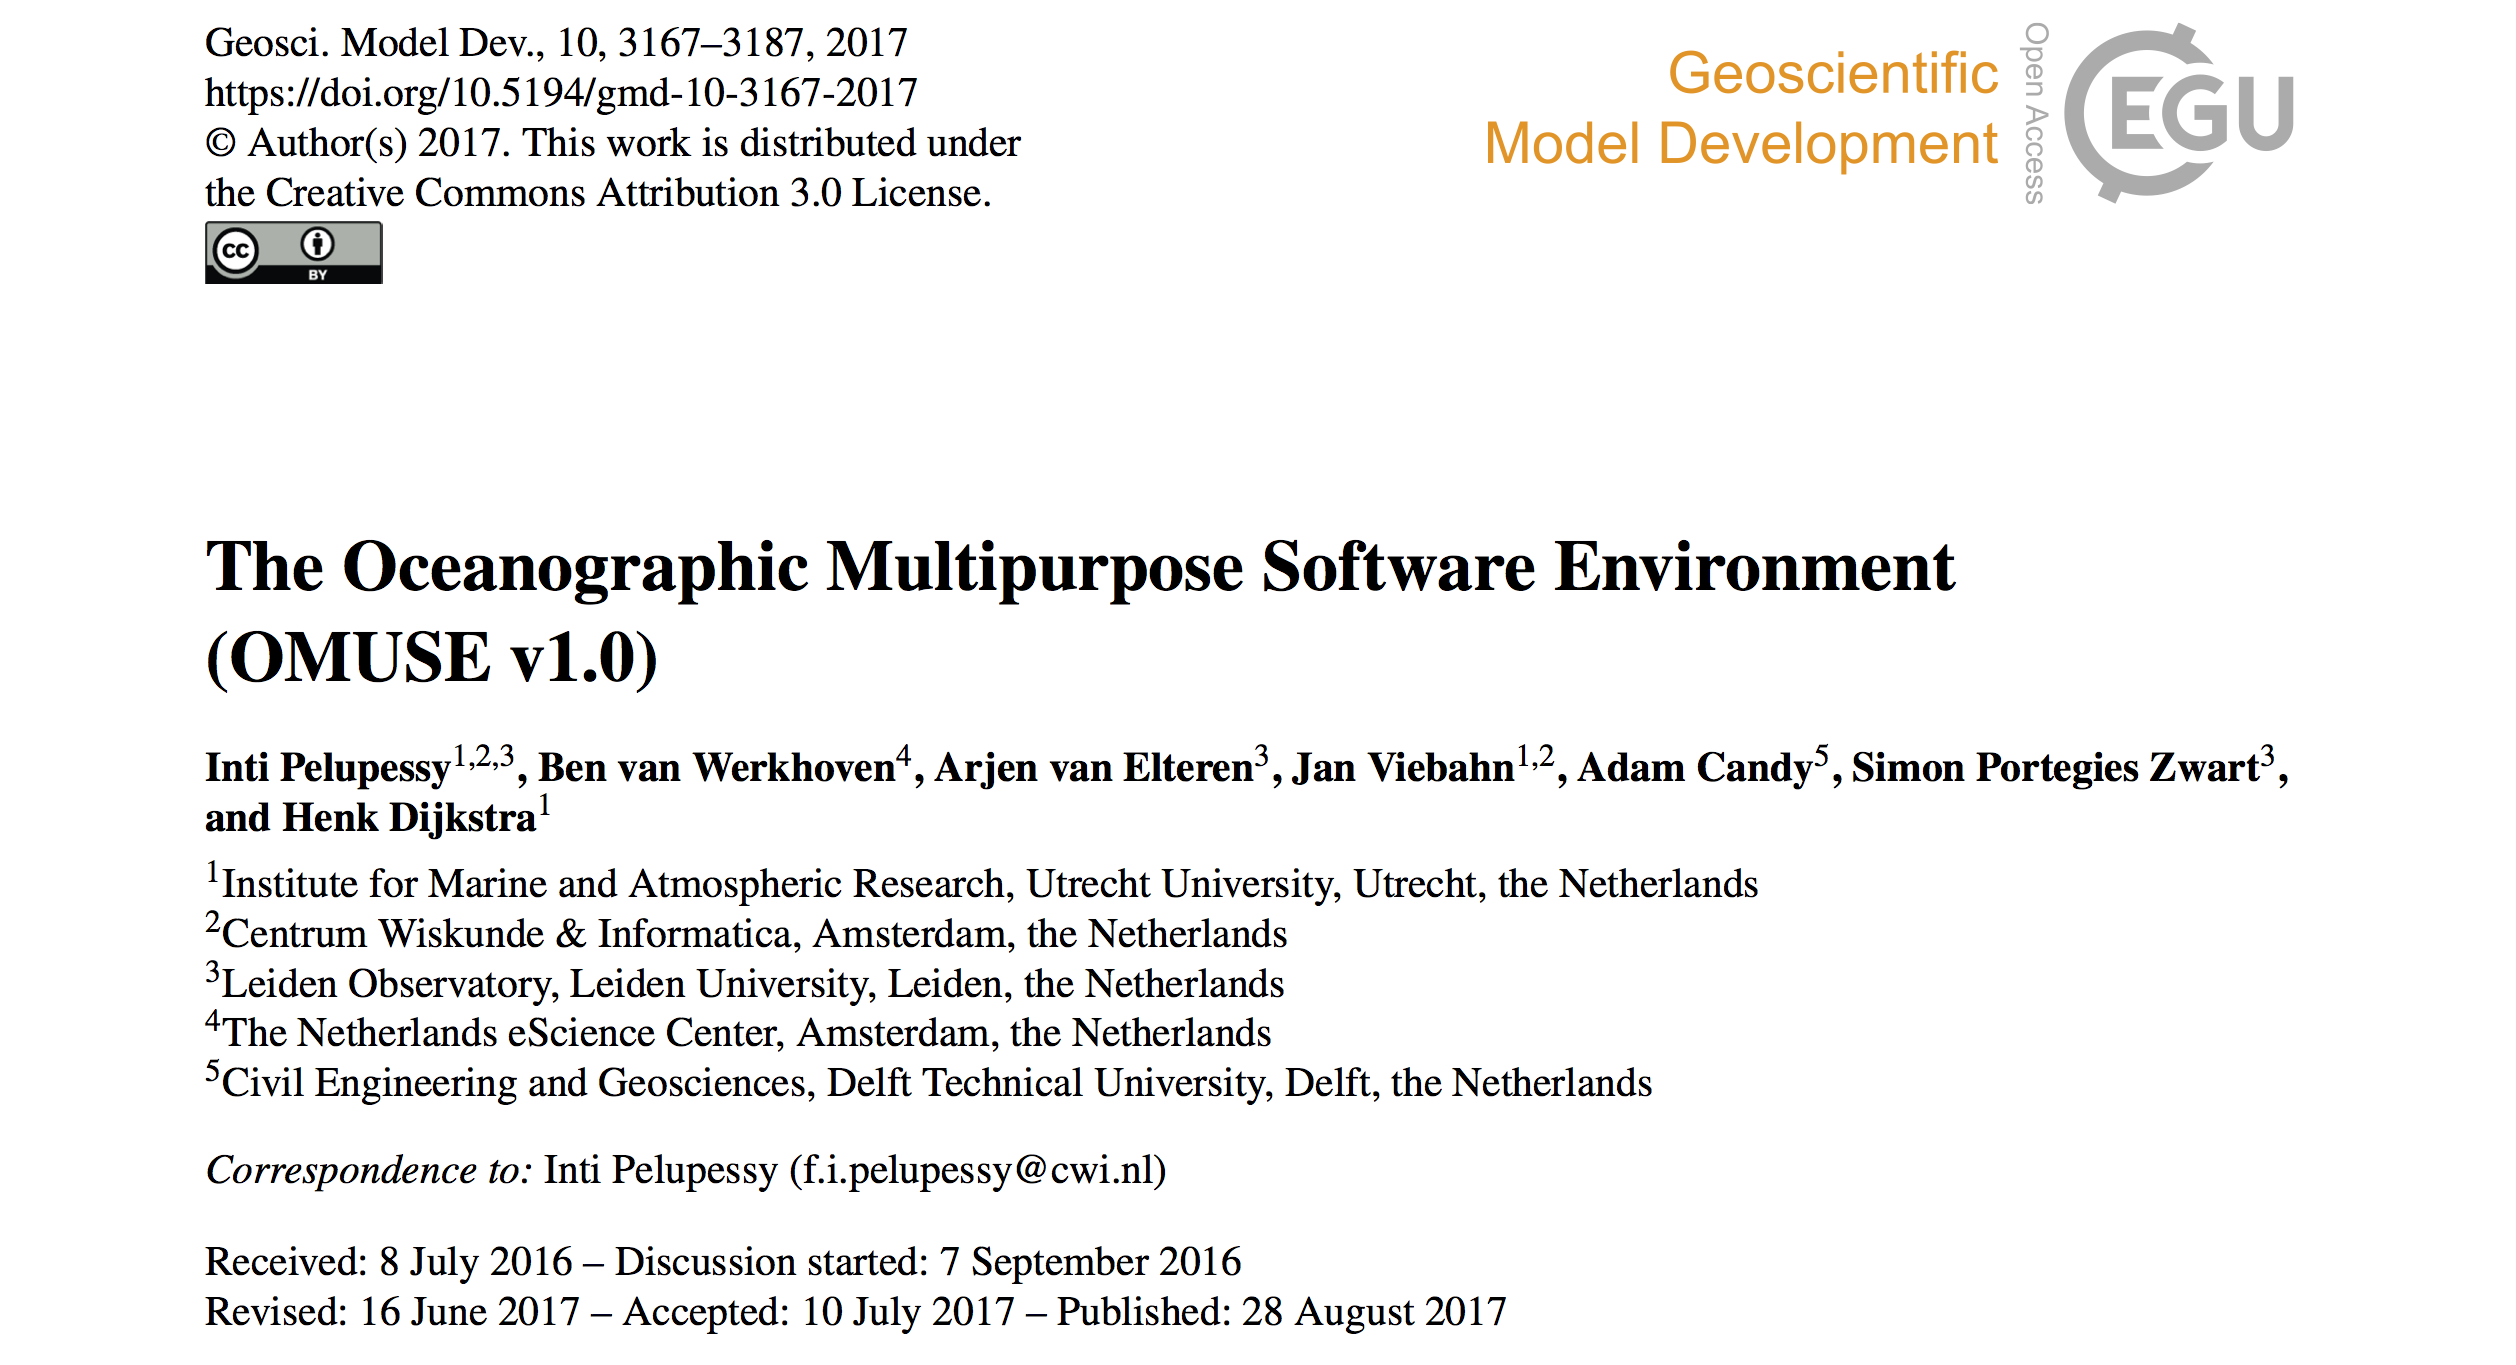 Published paper: The Oceanographic Multipurpose Software Environment (OMUSE)